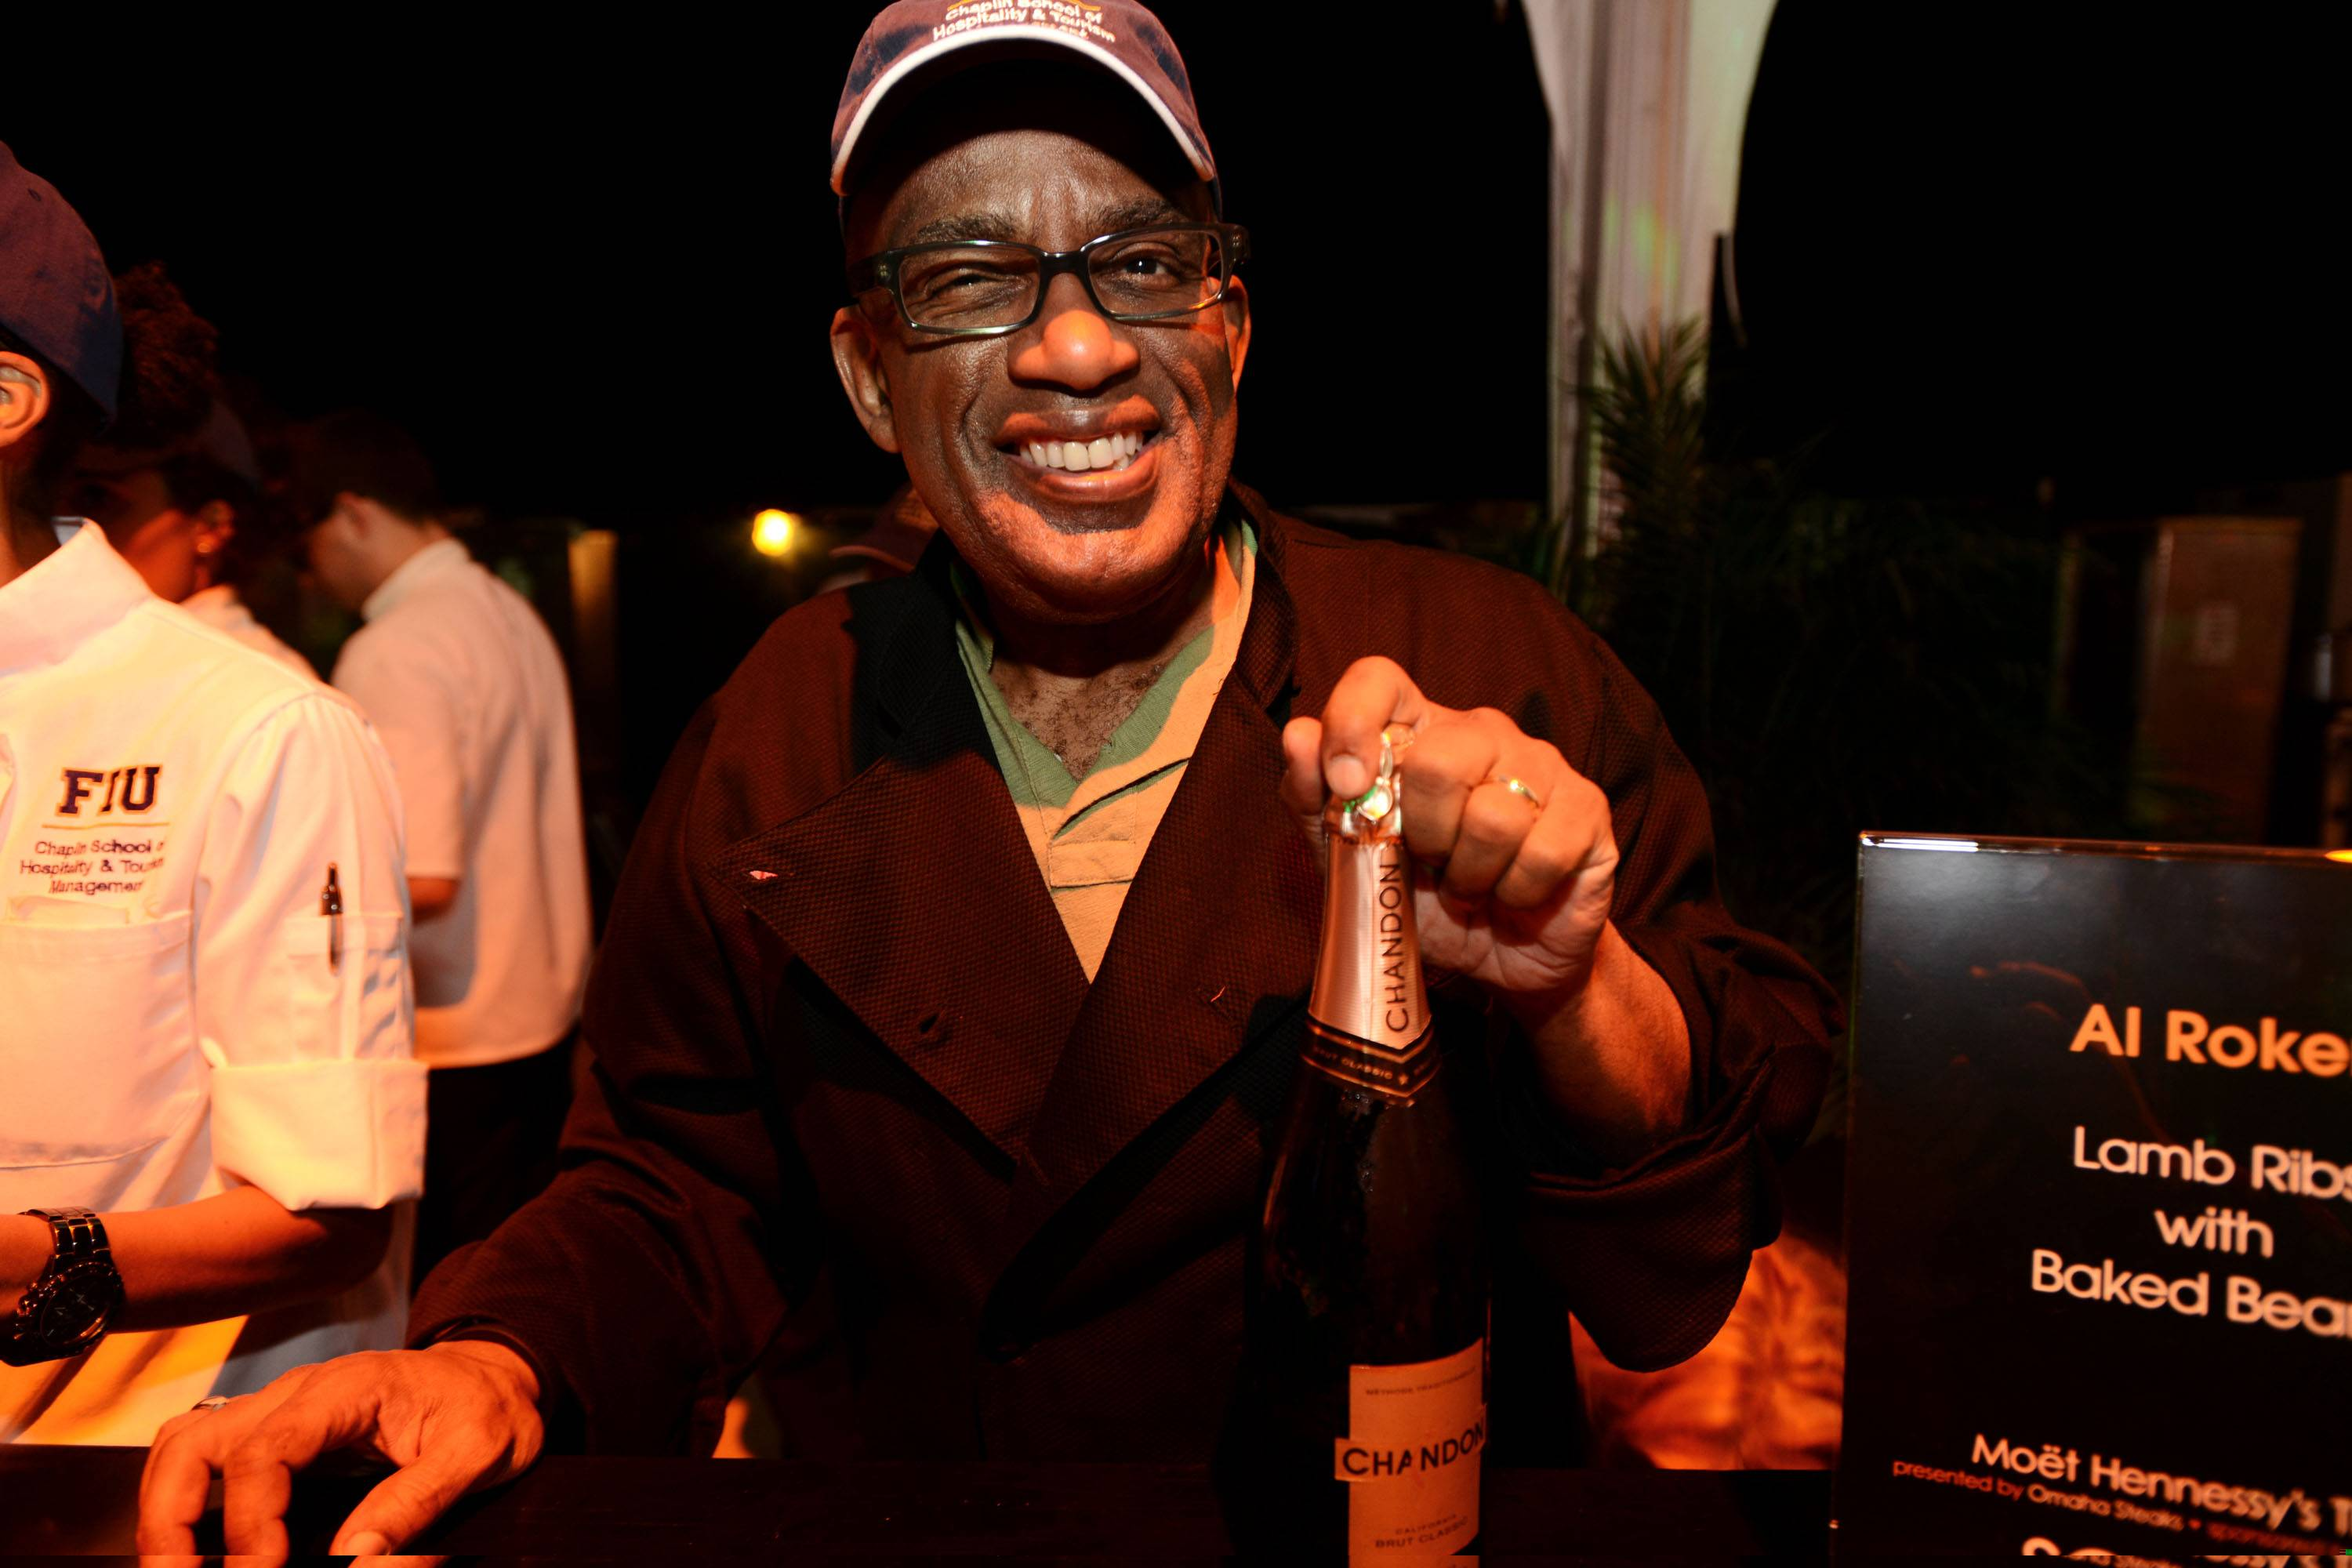 Al Roker & Chandon C#9CAEDF